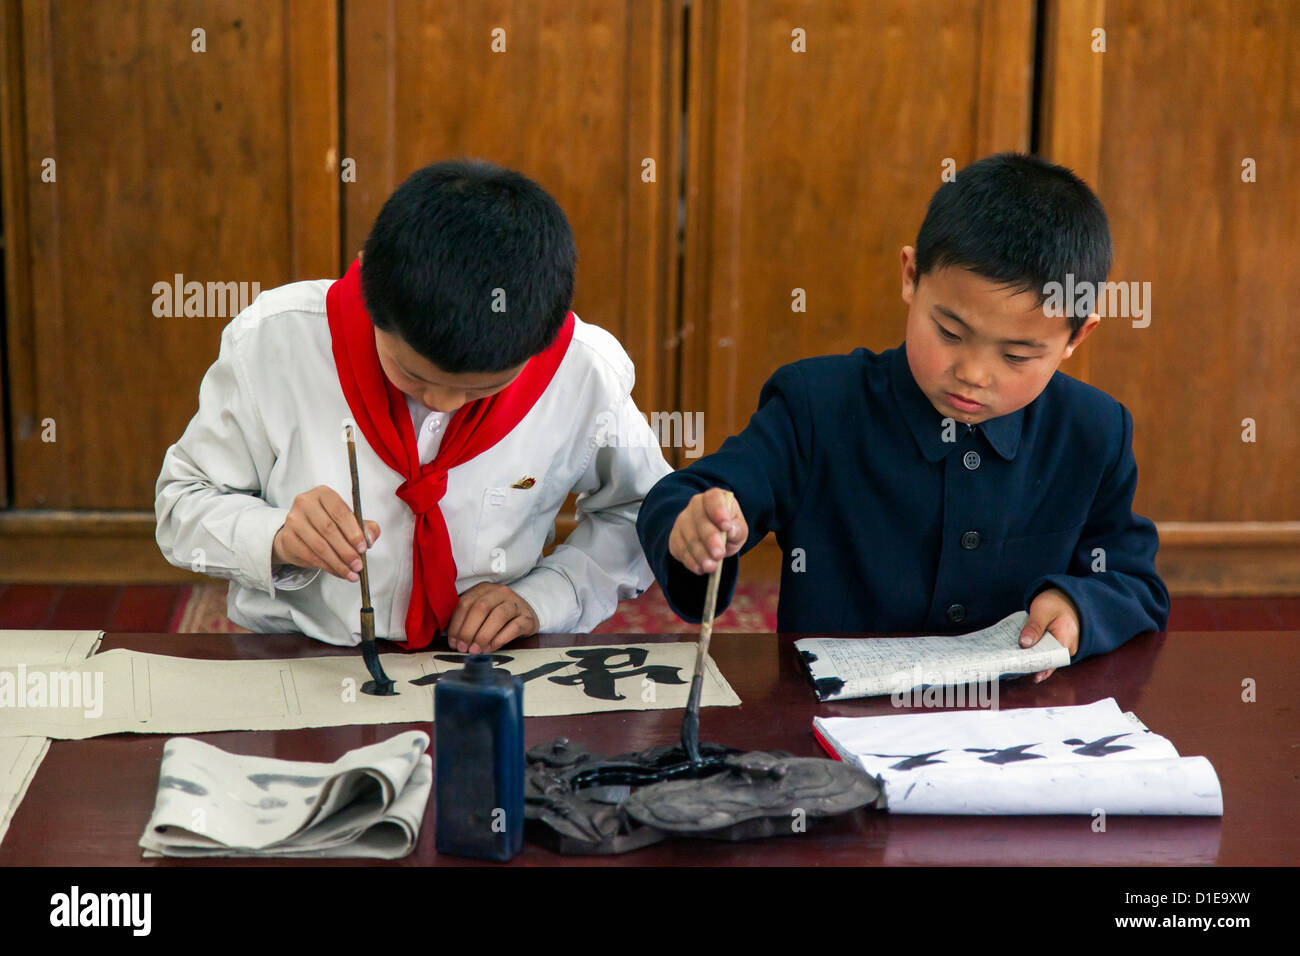 Calligraphy class, Mangyongdae Schoolchildren's Palace, Pyongyang, Democratic People's Republic of Korea - Stock Image